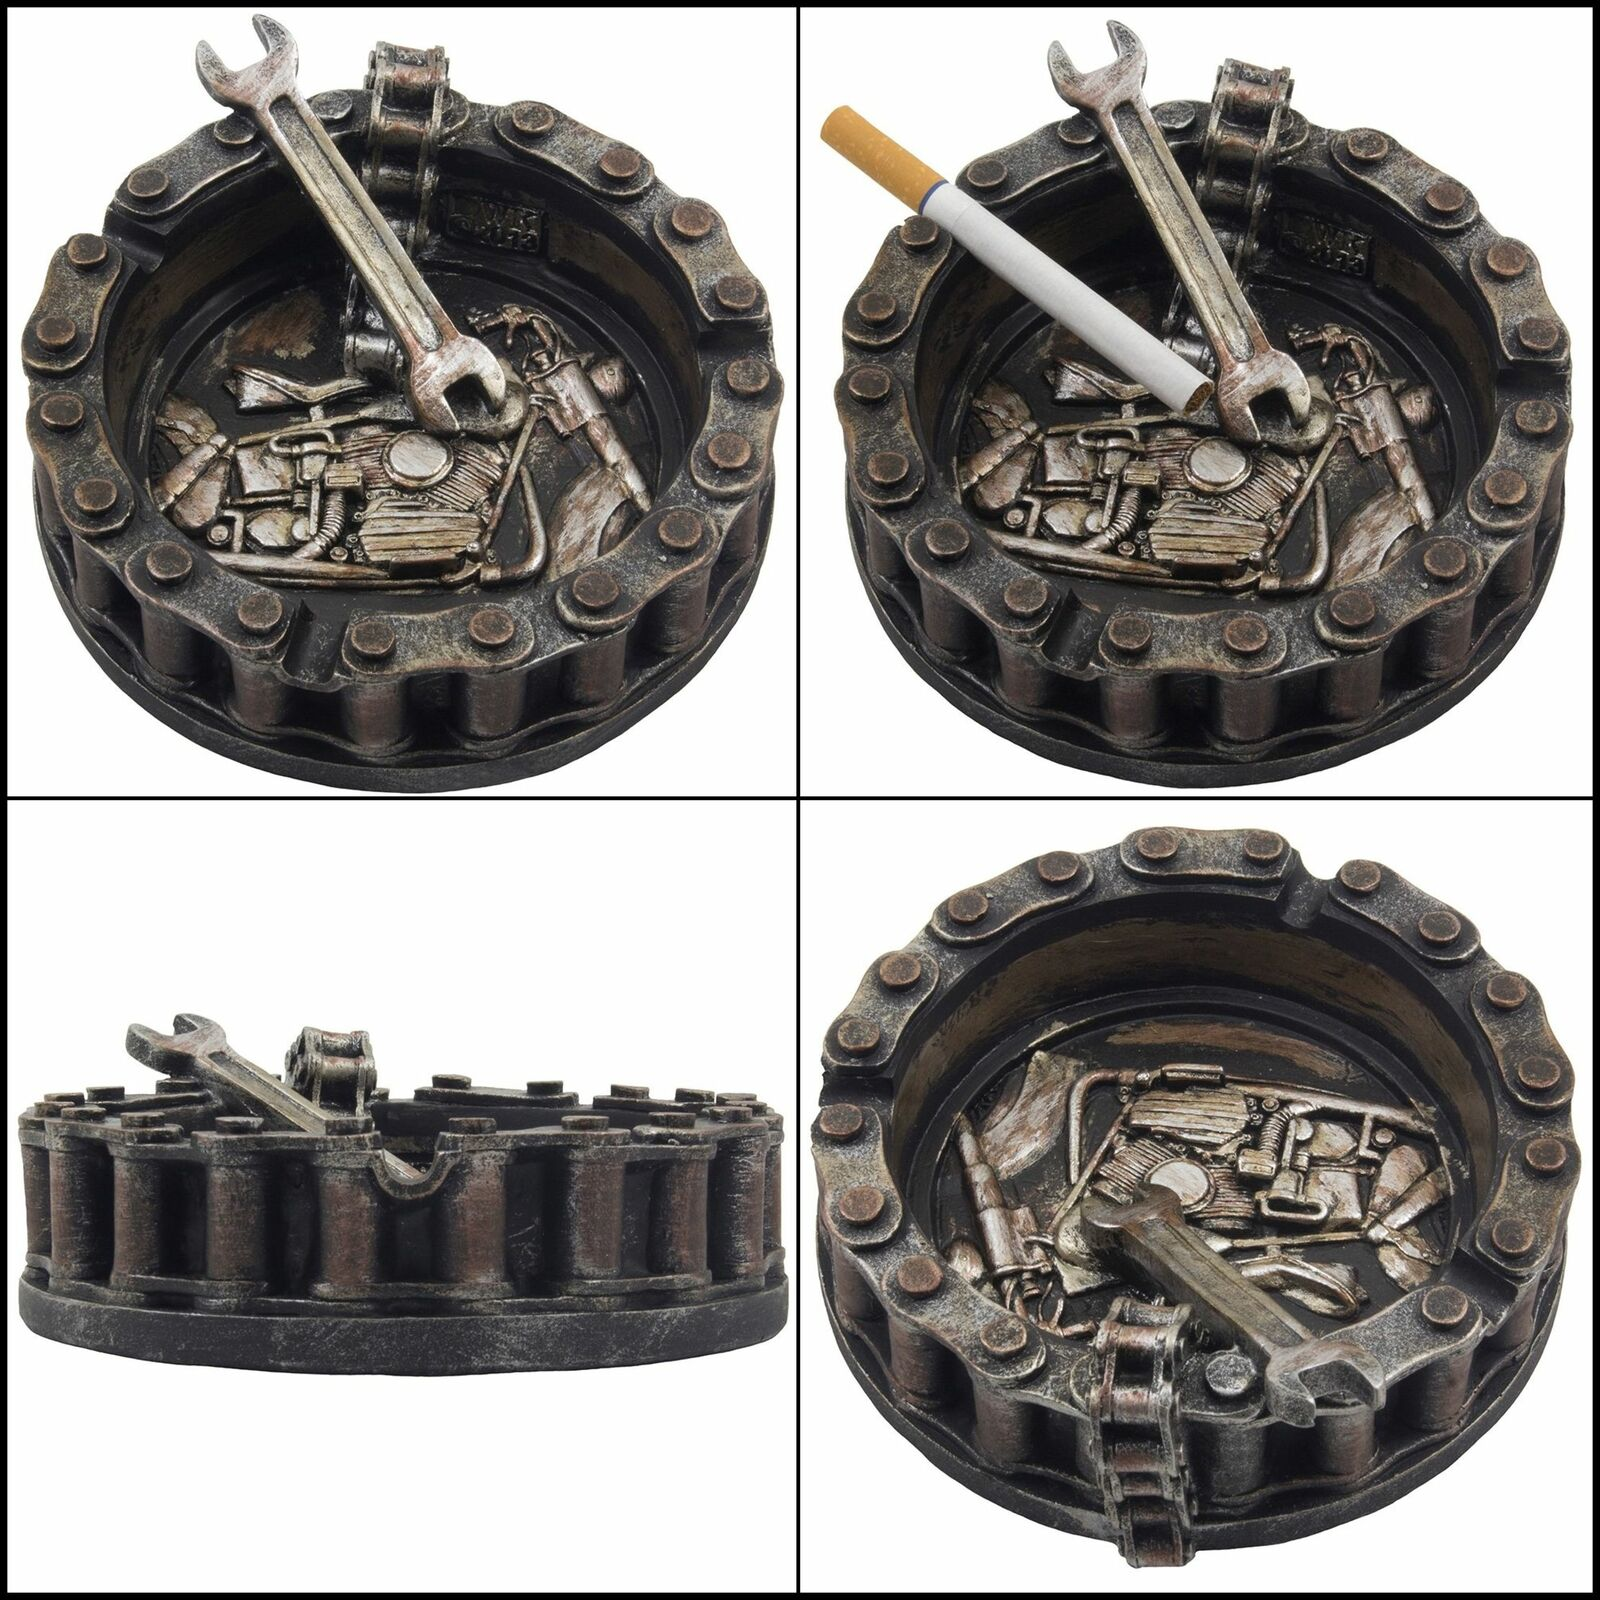 Decorative Motorcycle Chain Ashtray with Wrench and Bike Motif Great for a Biker Bar /& Harley Mechanics Shop Smoking Room Decor As Unique for Men or Smokers